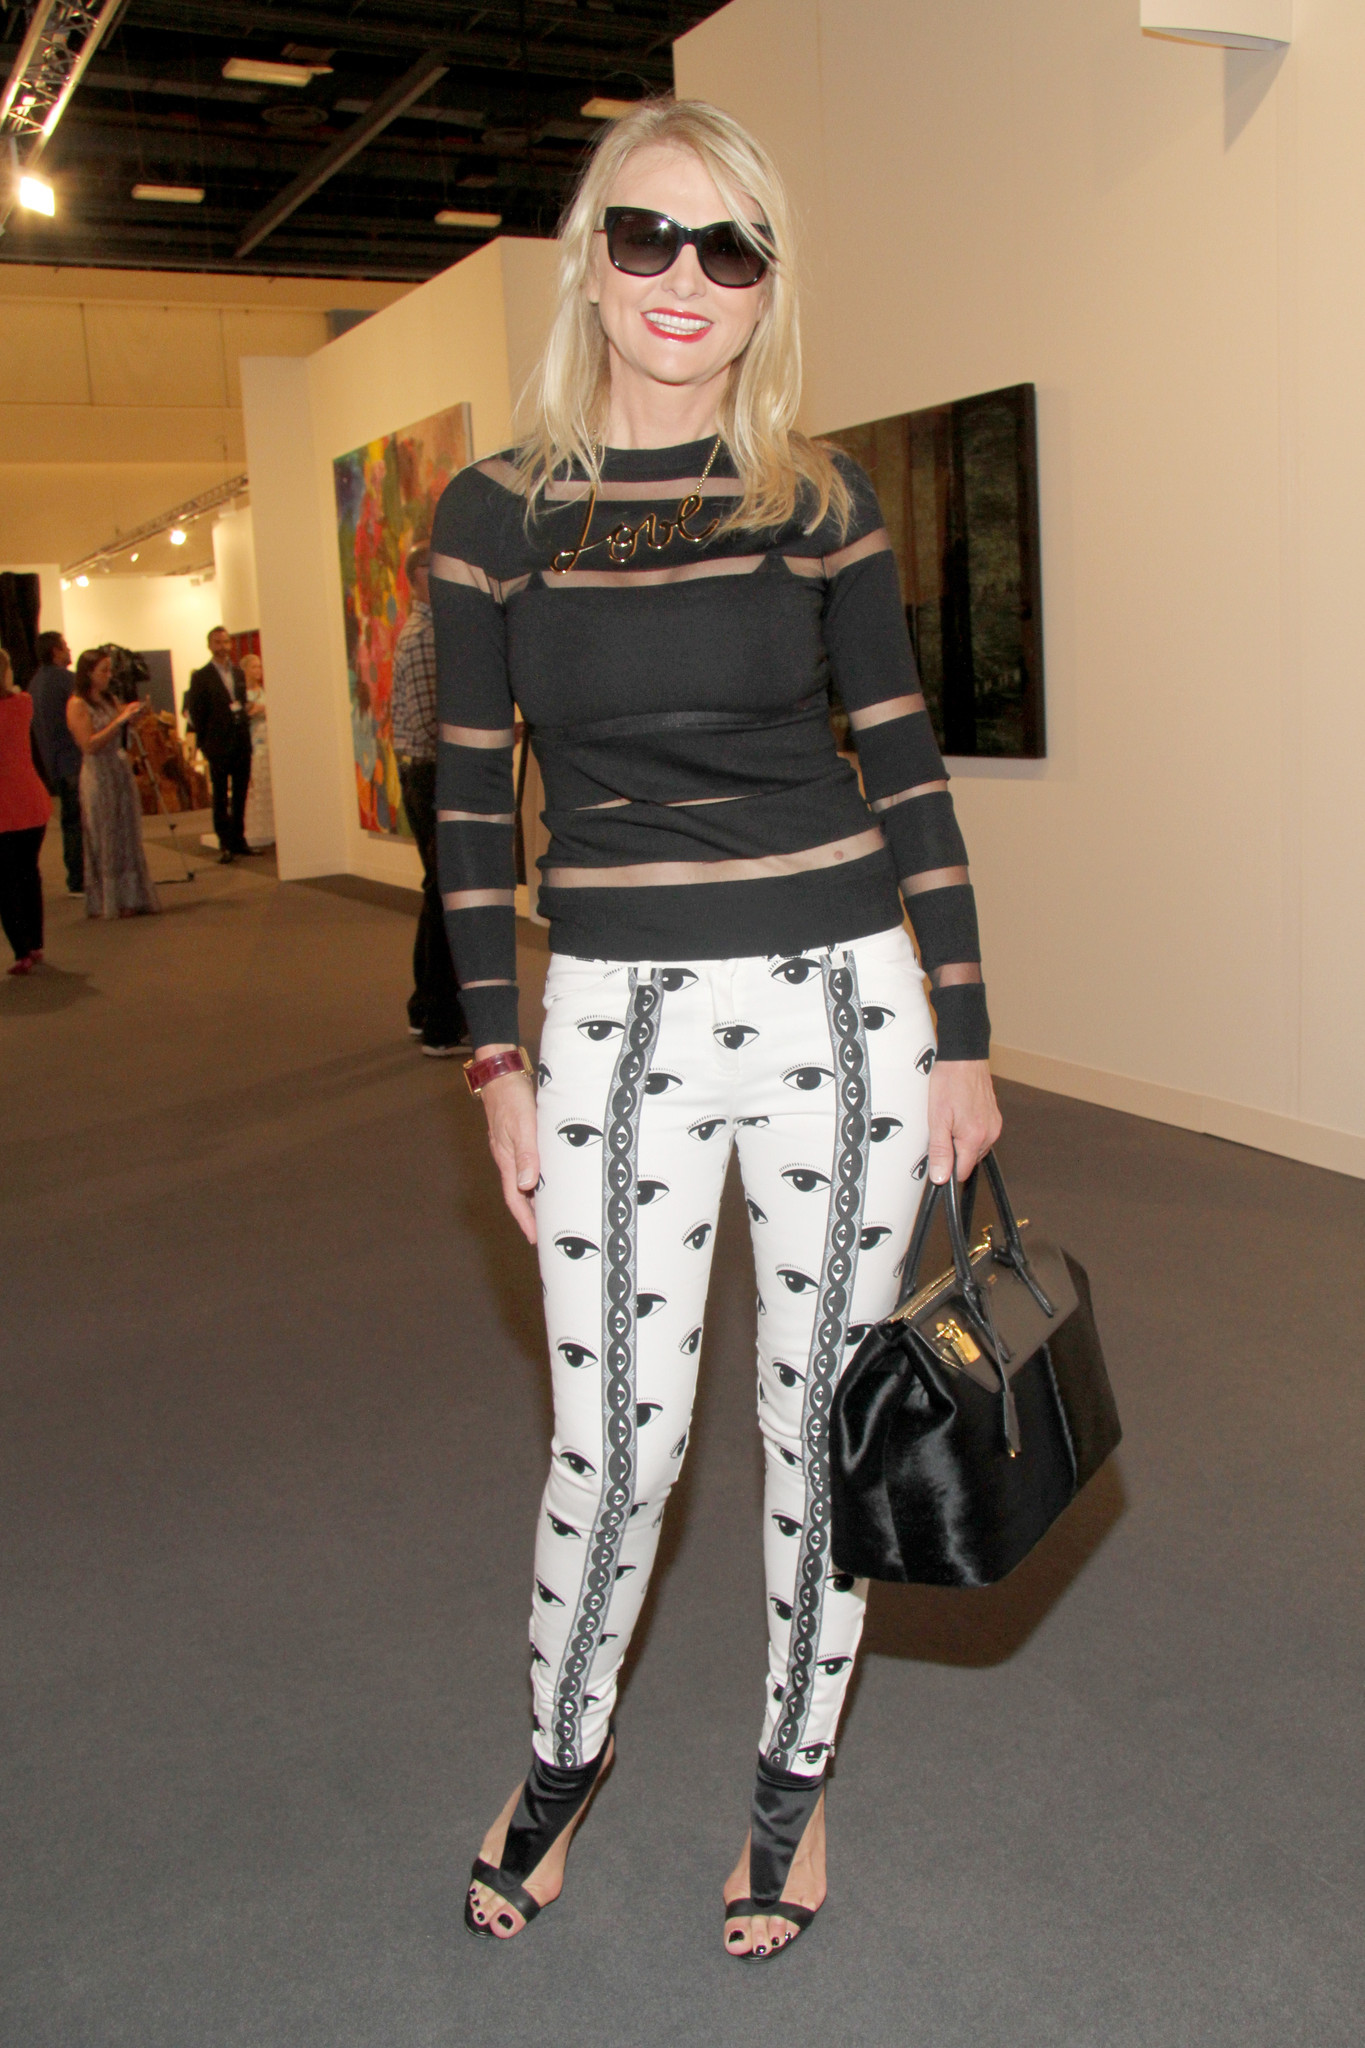 PHOTOS: The fashionistas of Art Basel - Art Basel Miami Beach 2013 - Day 1